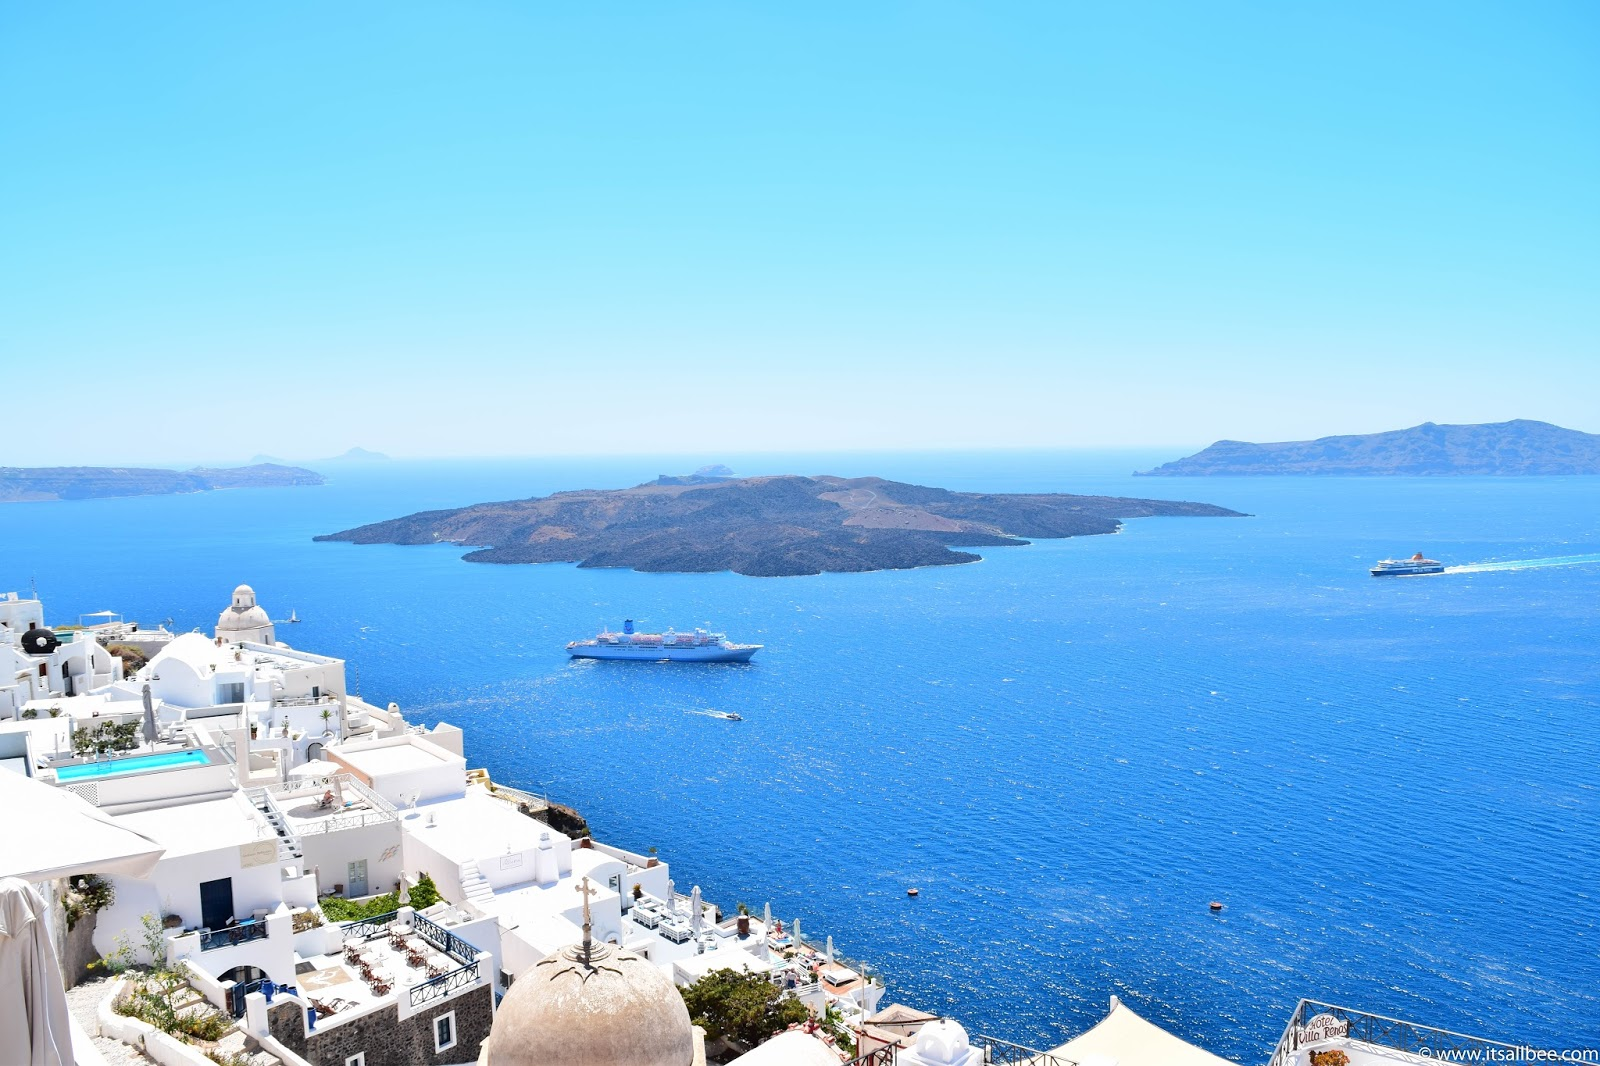 Santorini Beaches The Best Beaches To Check Out Itsallbee Travel Blog